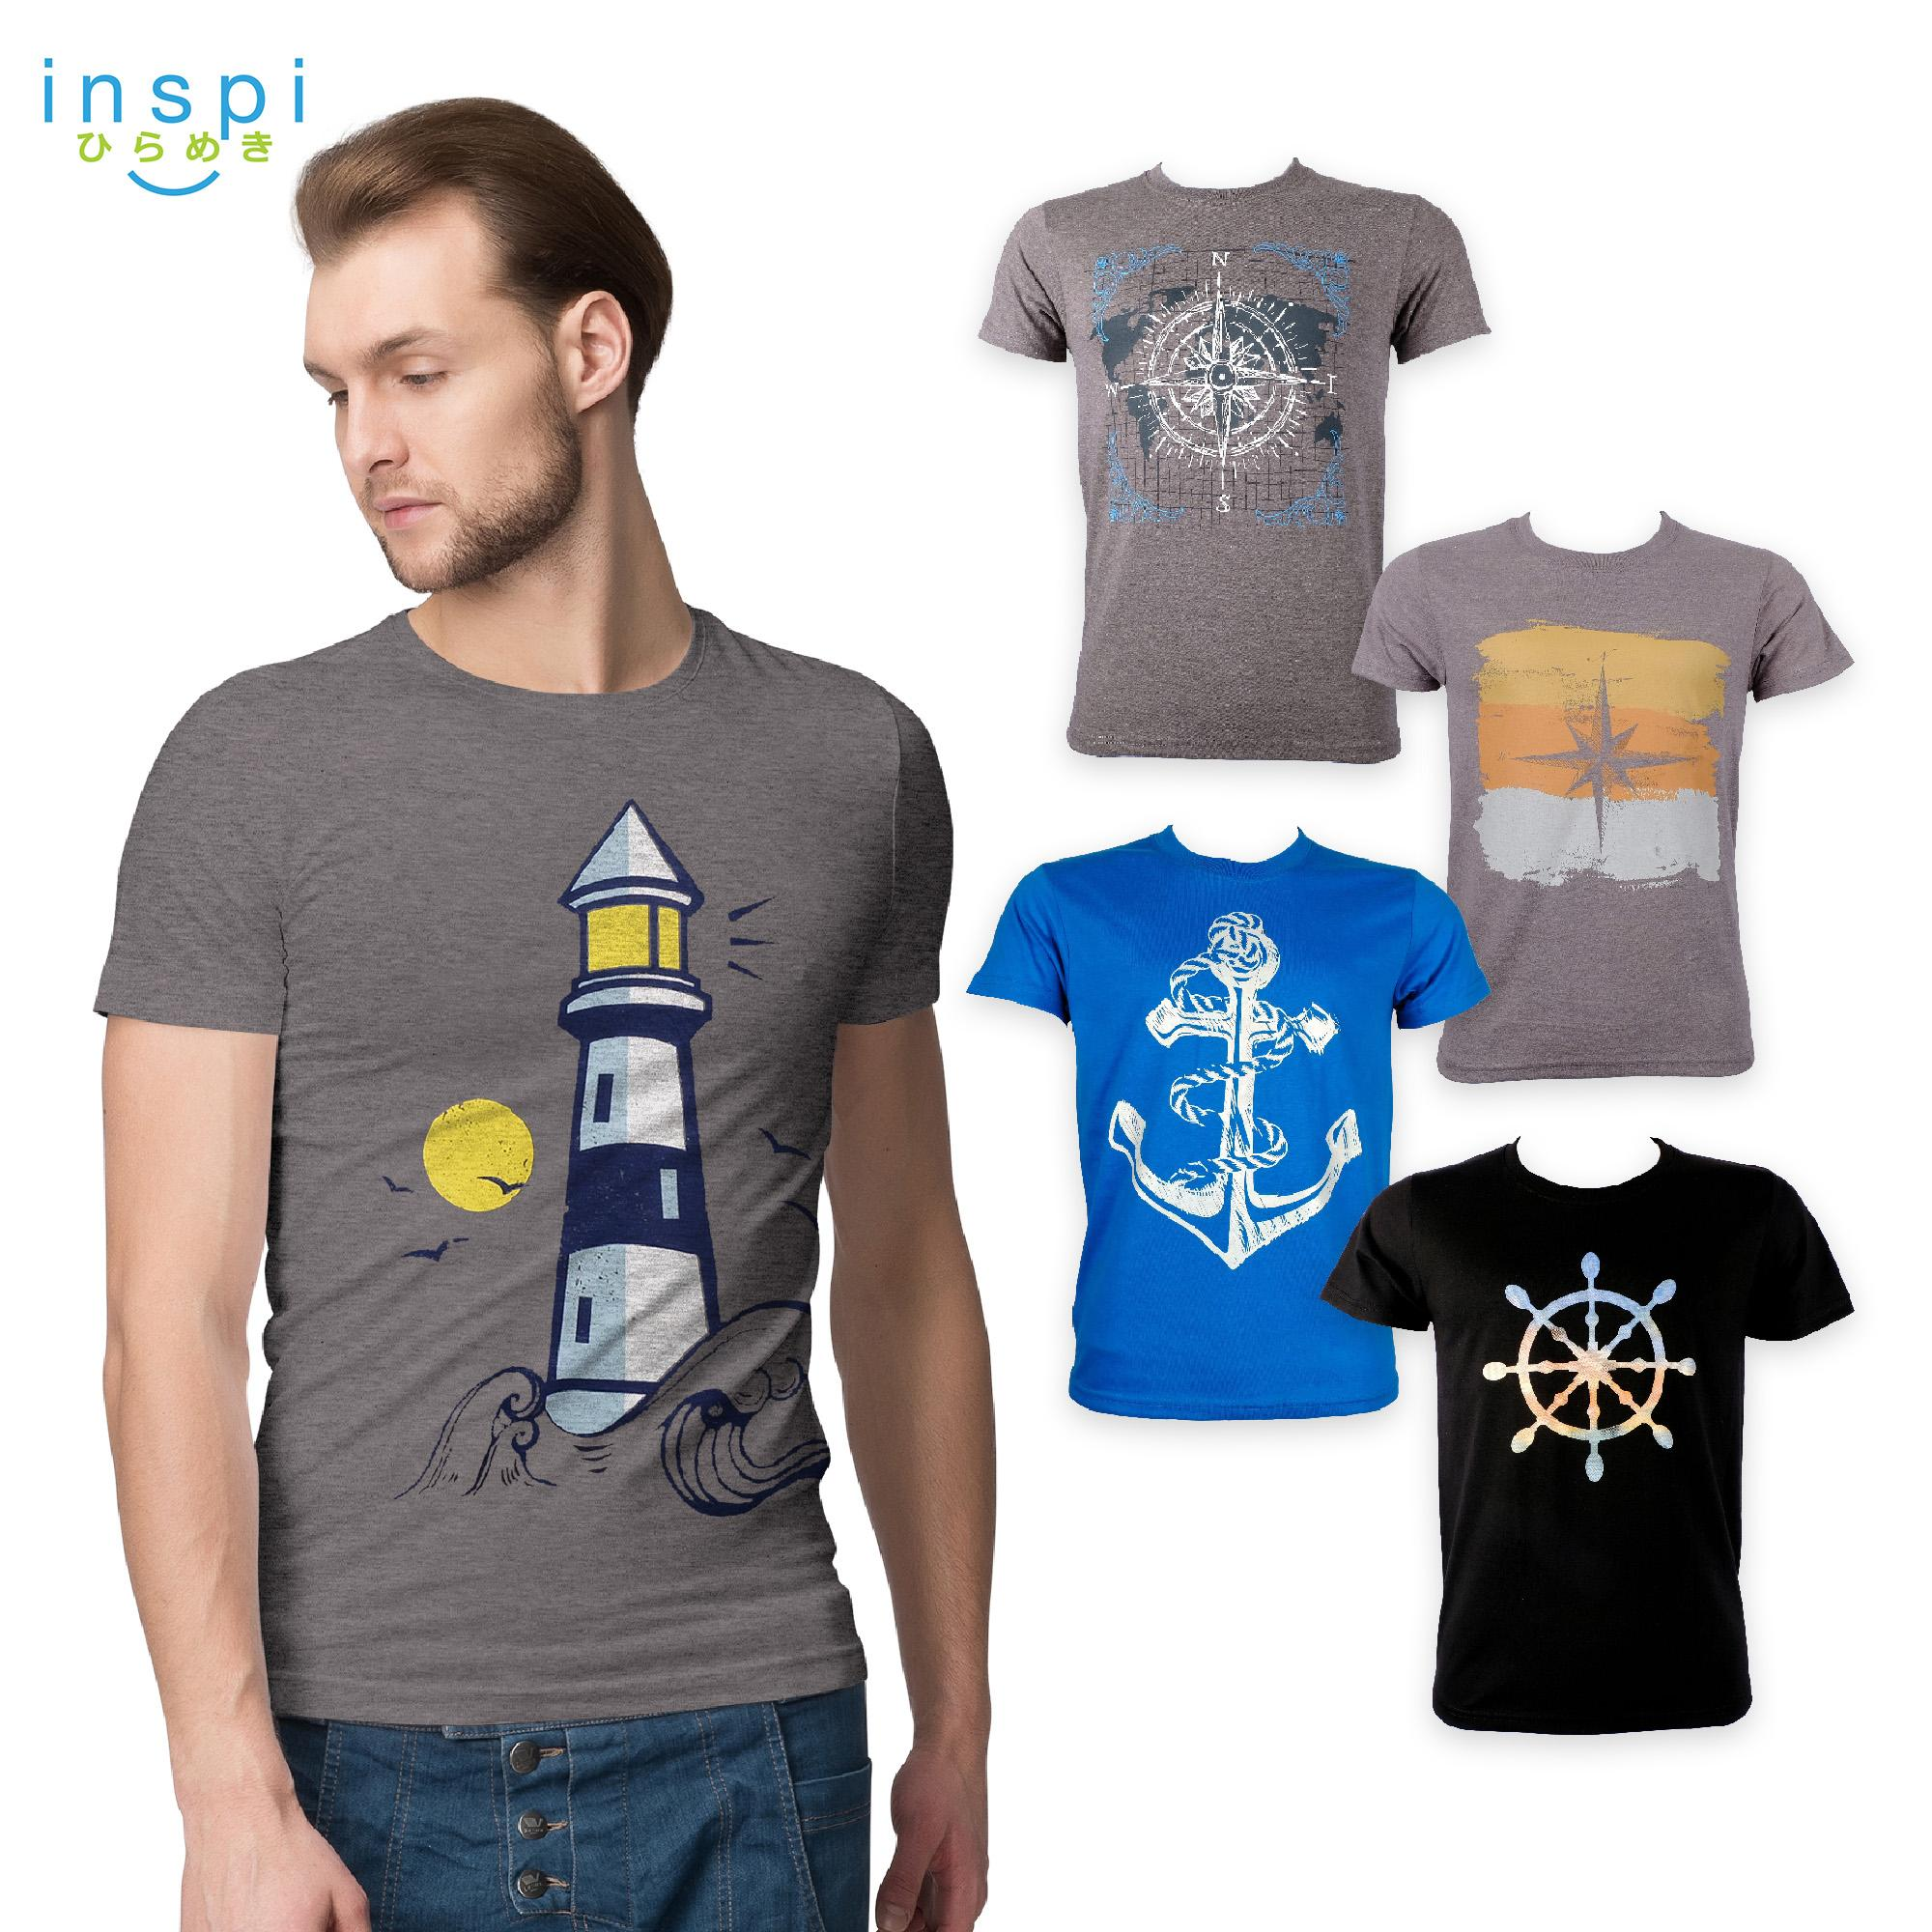 ee4260f9fdd8 INSPI Tees Navigate Collection tshirt printed graphic tee Mens t shirt  shirts for men tshirts sale